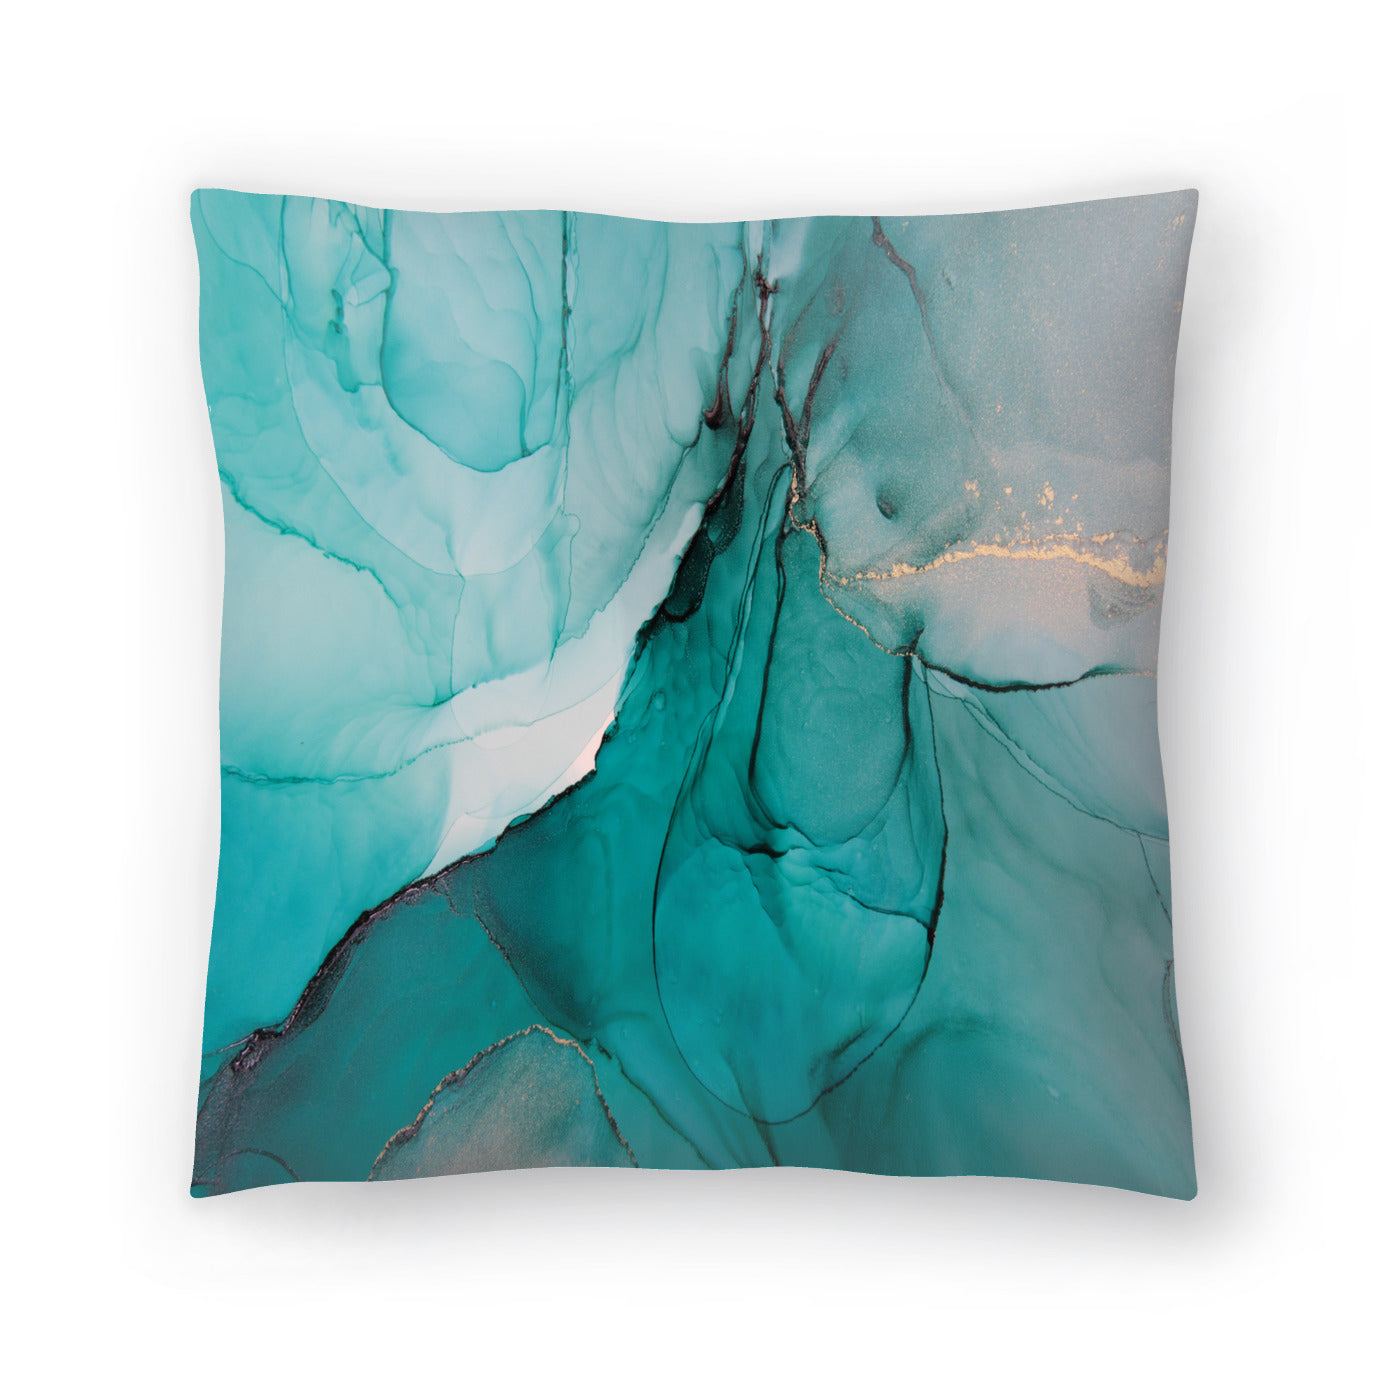 Celestial by Emma Thomas Decorative Pillow - Americanflat